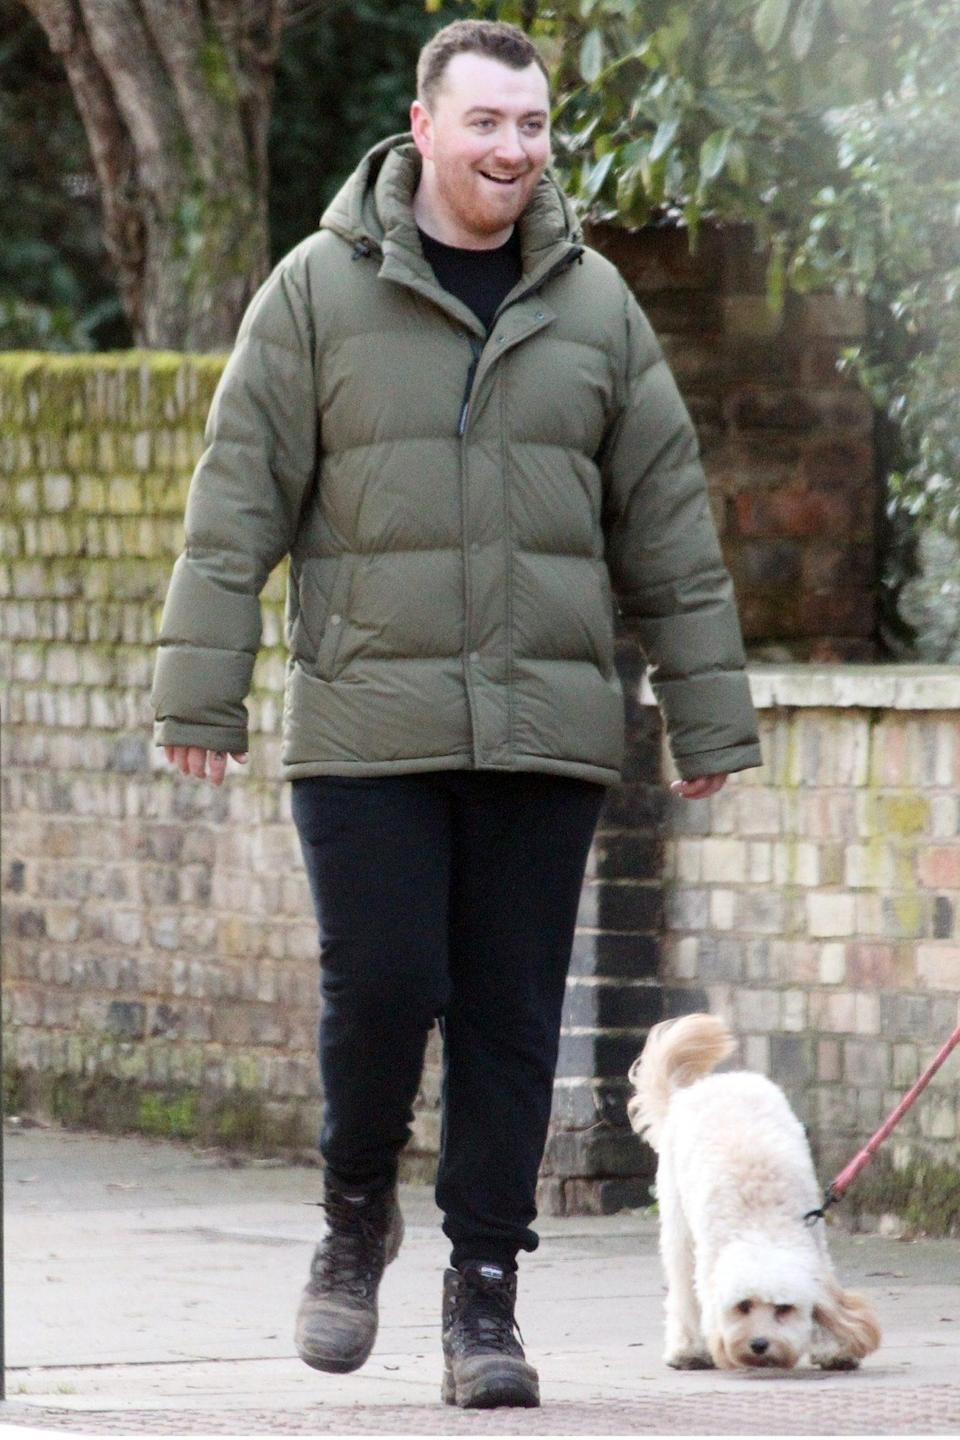 <p>Sam Smith and his puppy get some fresh air while on a walk through Hampstead, London on Thursday.</p>